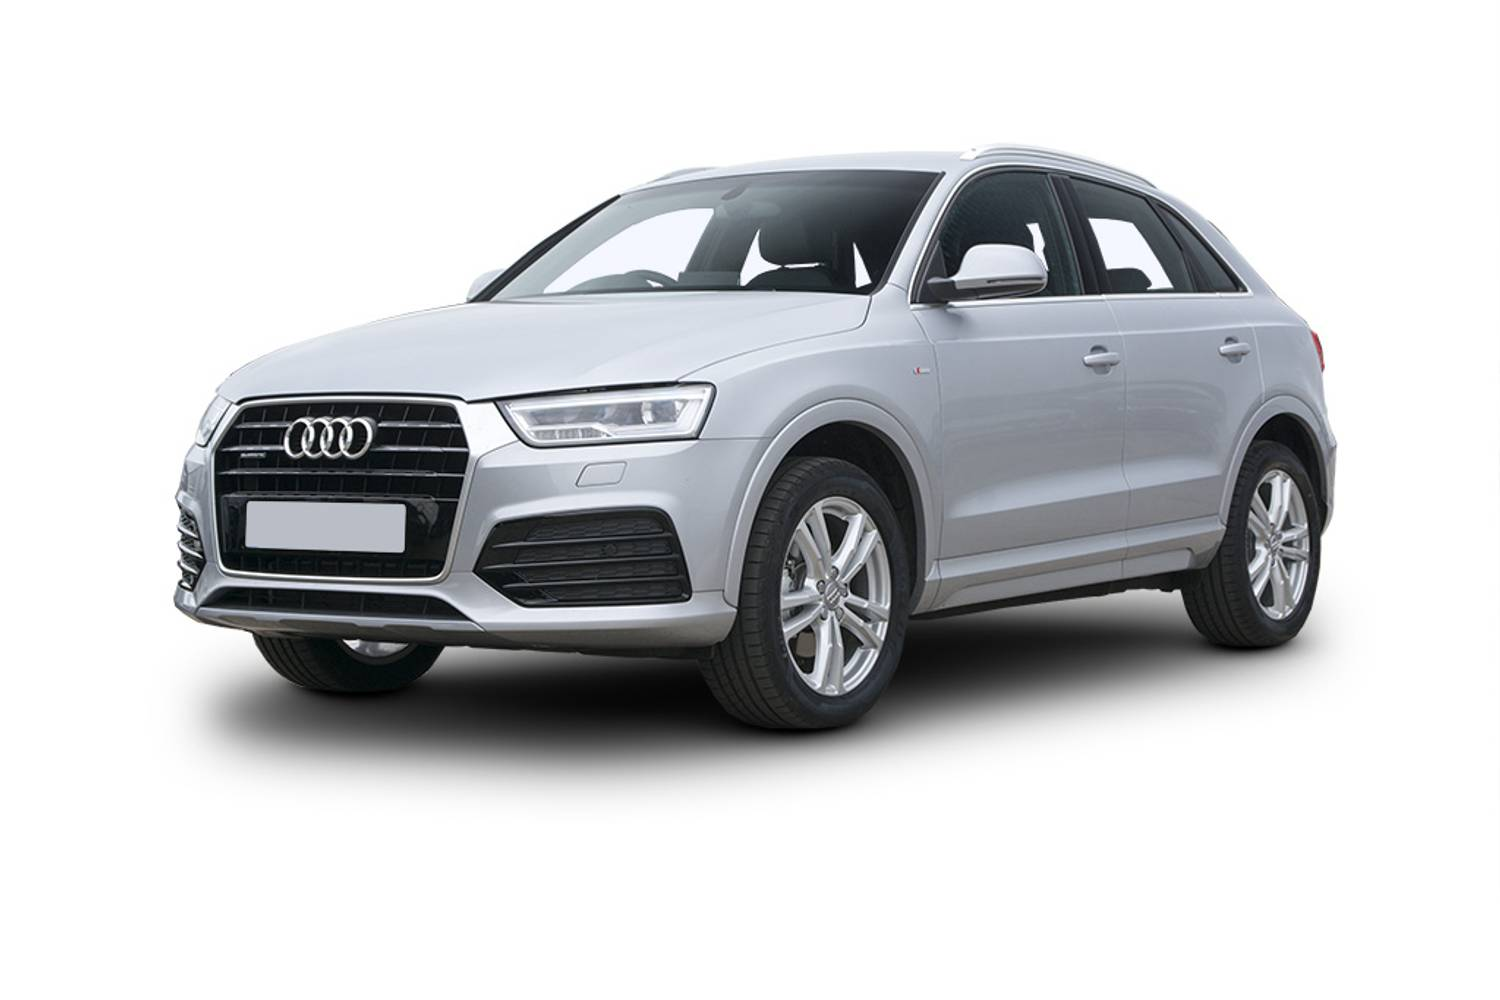 new audi q3 estate special editions 2 0 tdi quattro s line edition 5 door s tronic 2016 for sale. Black Bedroom Furniture Sets. Home Design Ideas